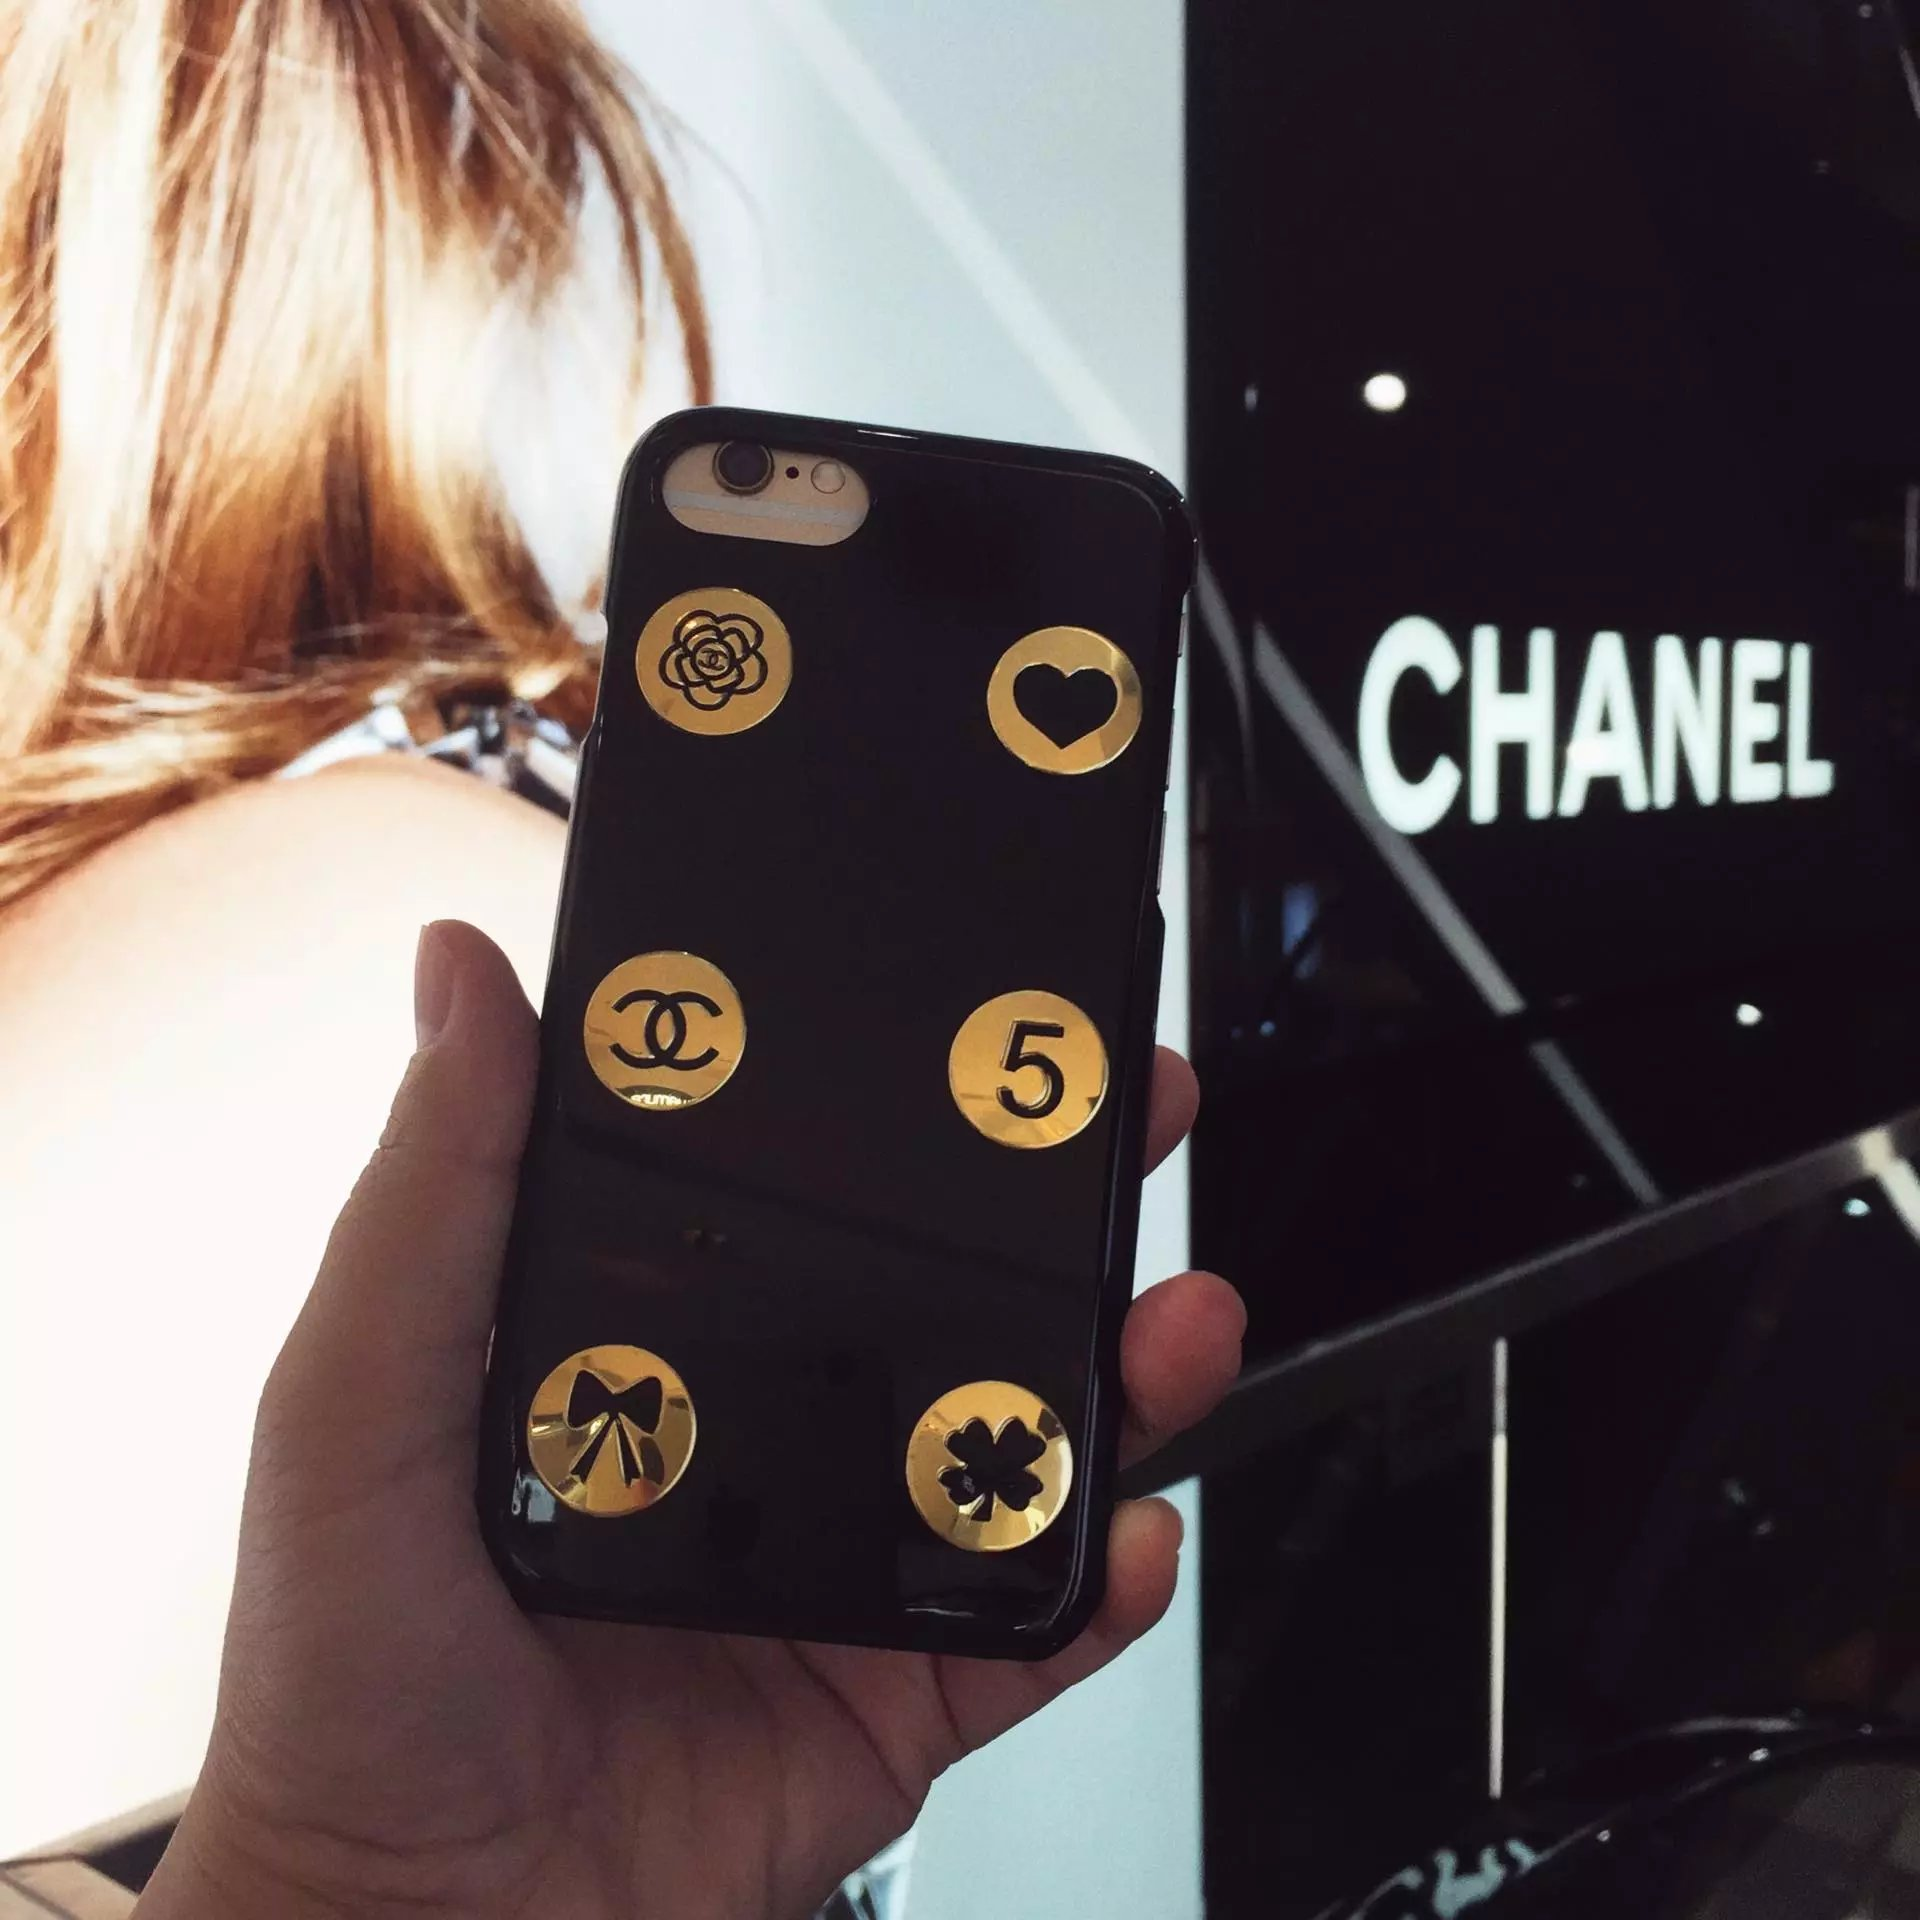 where can i buy iphone 8 Plus cases iphone 8 Plus protective cases Chanel iphone 8 Plus case best cases iphone iPhone 8 Plus case designer cas iphone cell phone faceplates custom iphone covers best iPhone 8 Plus phone cases